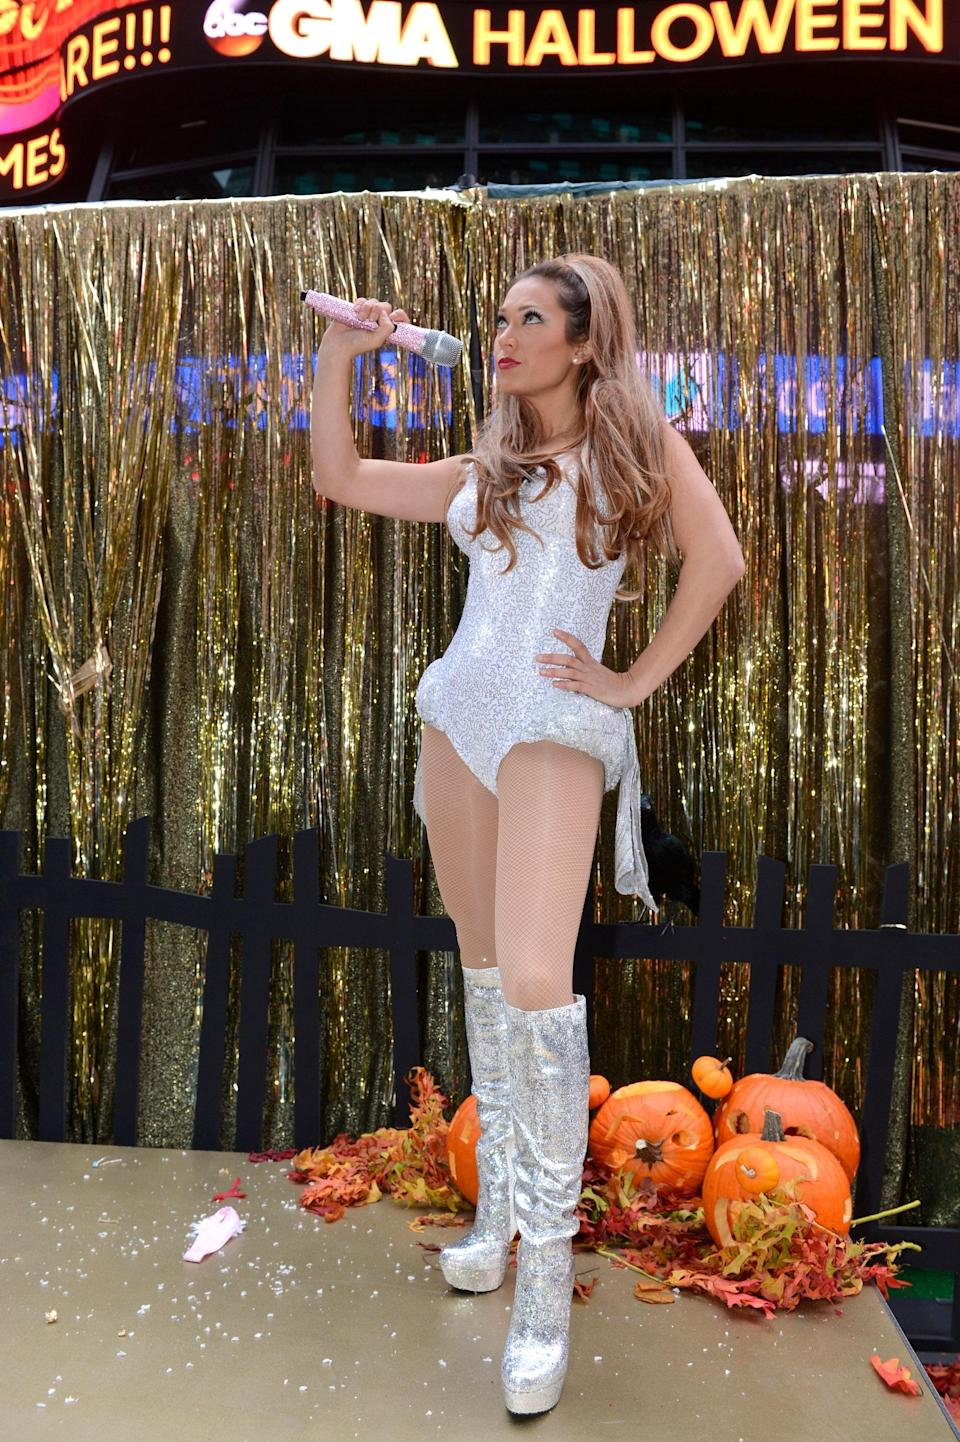 """Morning television hosts love Halloween. Proof: Take a look at <em>Good Morning America</em>'s Ginger Zee as <a href=""""http://www.glamour.com/about/ariana-grande?mbid=synd_yahoo_rss"""" rel=""""nofollow noopener"""" target=""""_blank"""" data-ylk=""""slk:Ariana Grande"""" class=""""link rapid-noclick-resp"""">Ariana Grande</a>, complete with her signature half-up, half-down hairdo. If you're inspired to dress up as Grande this year, you'll need a high ponytail (or a wig), a leotard, and knee-high boots."""